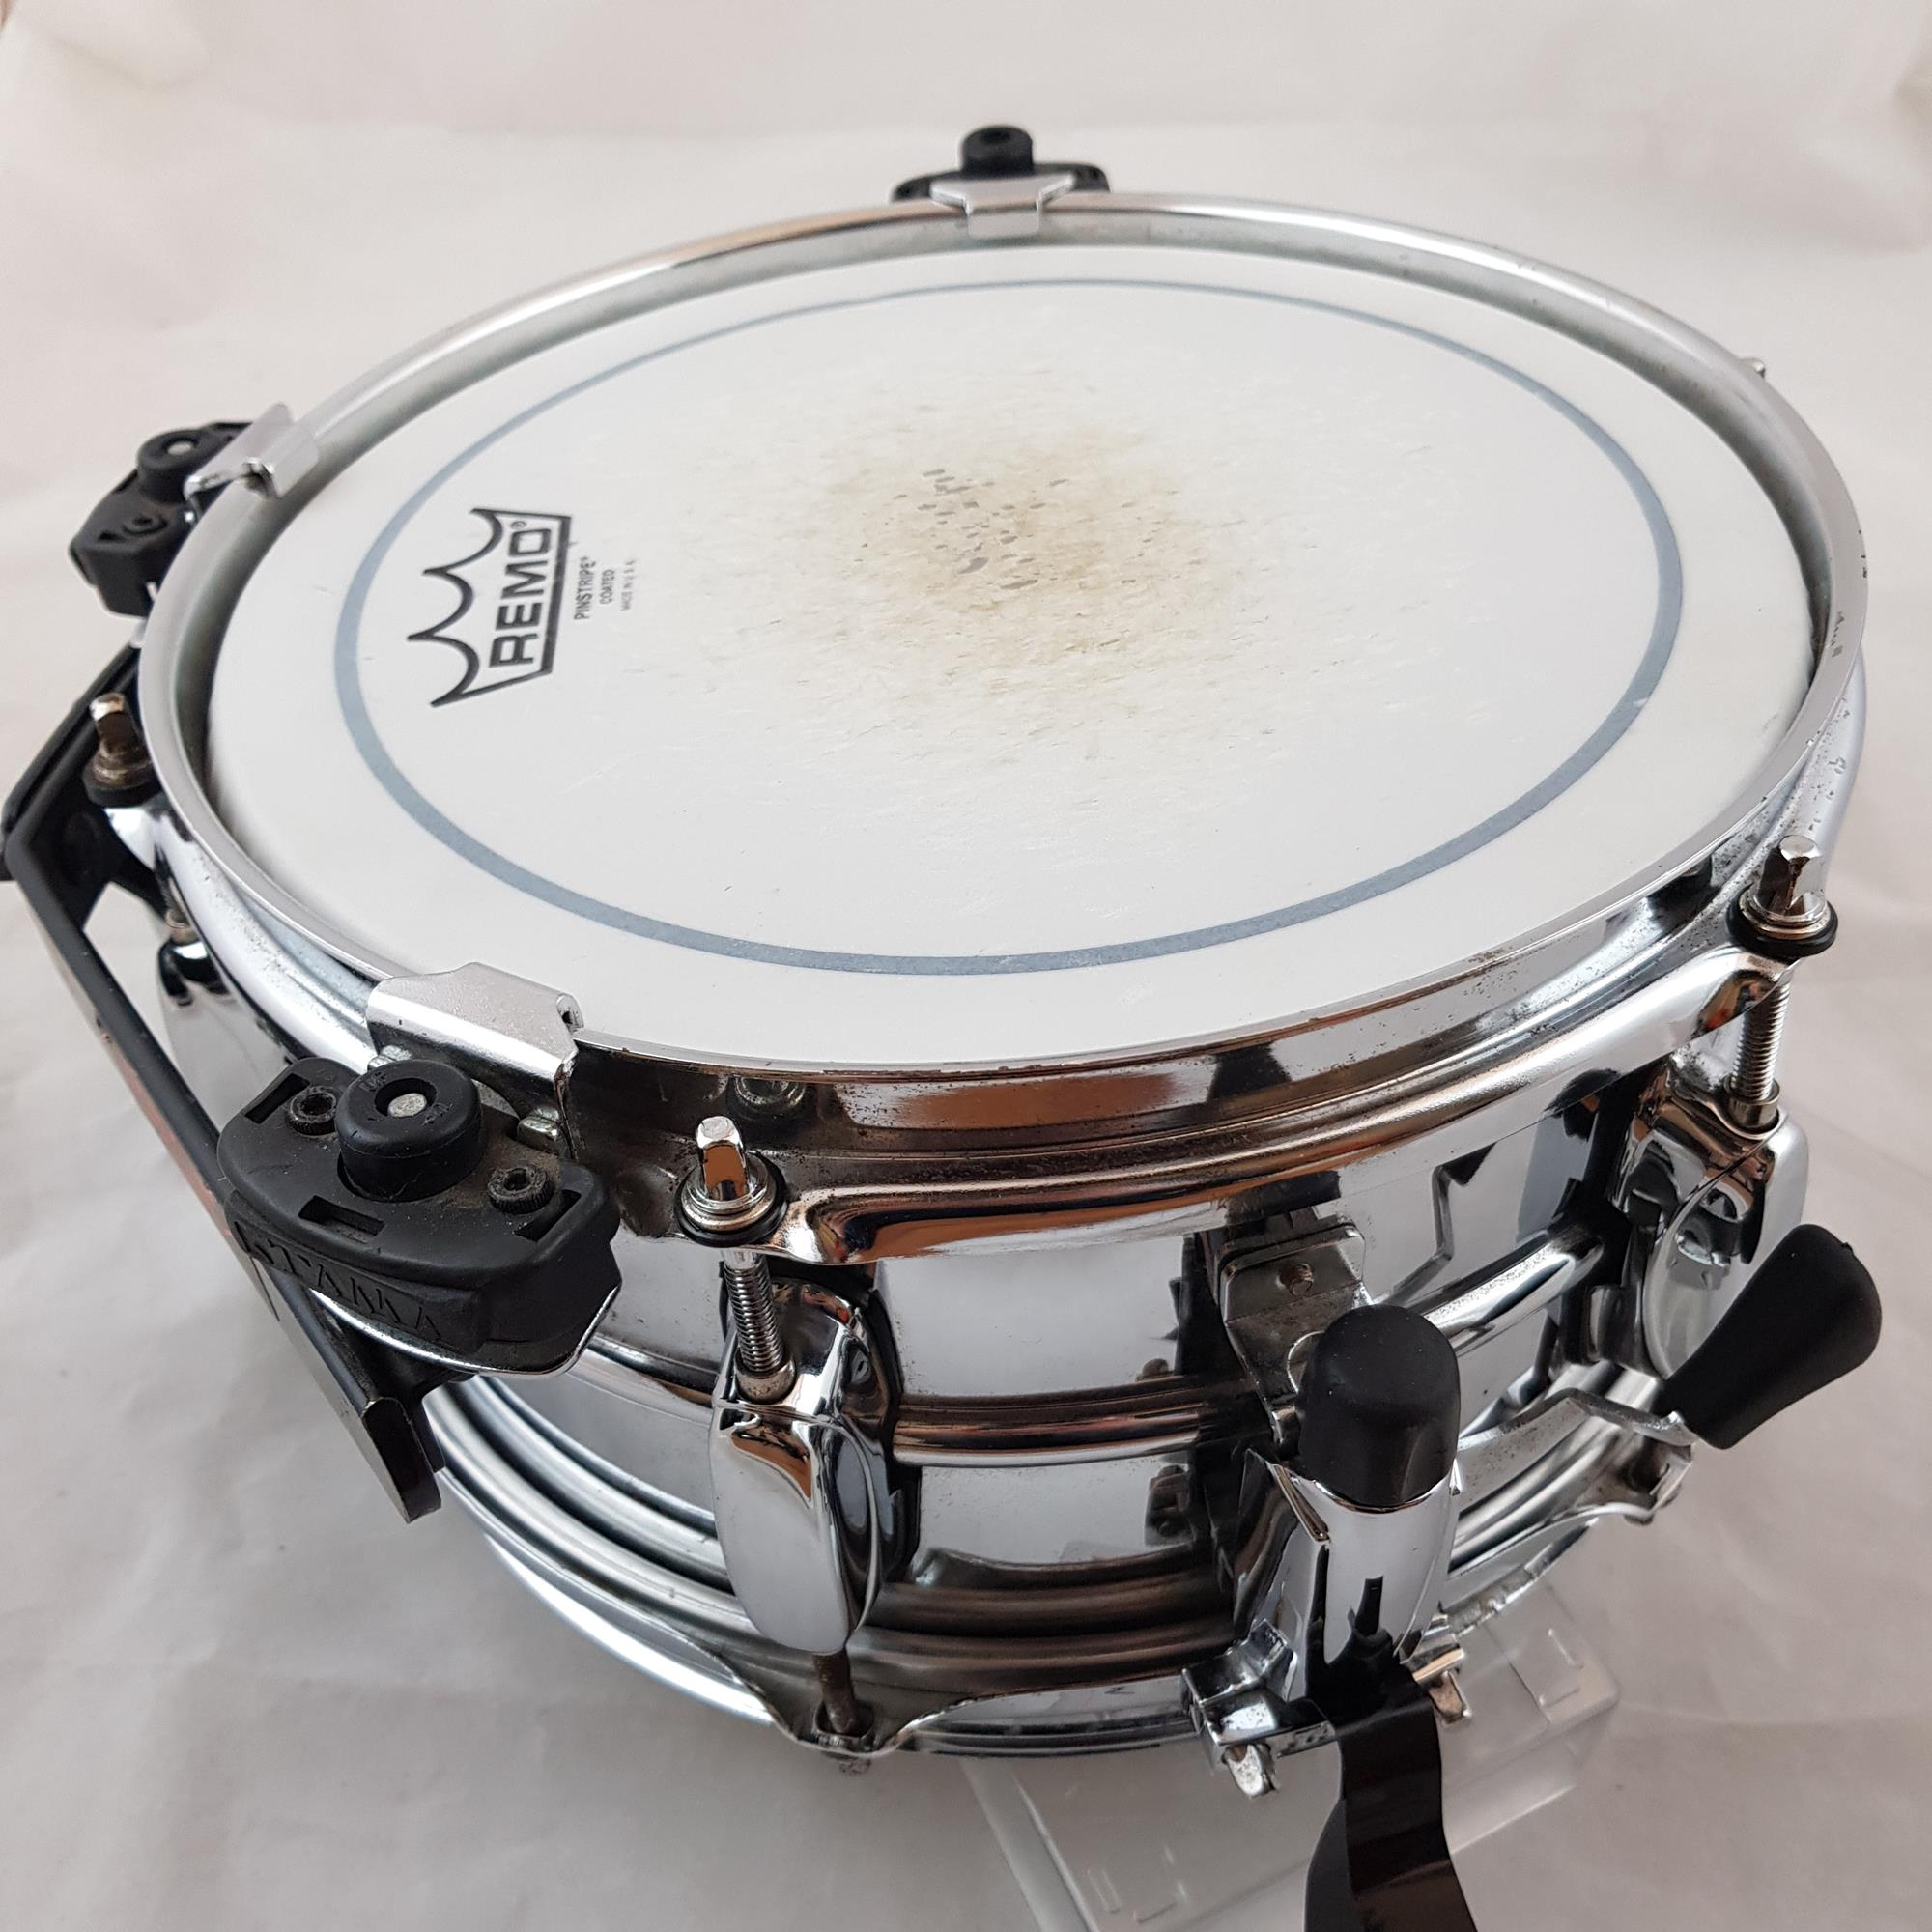 TAMA-METAL-WORKS-SNARE-10-RULLANTE-STARCAST-HOLDER-sku-1607180300656